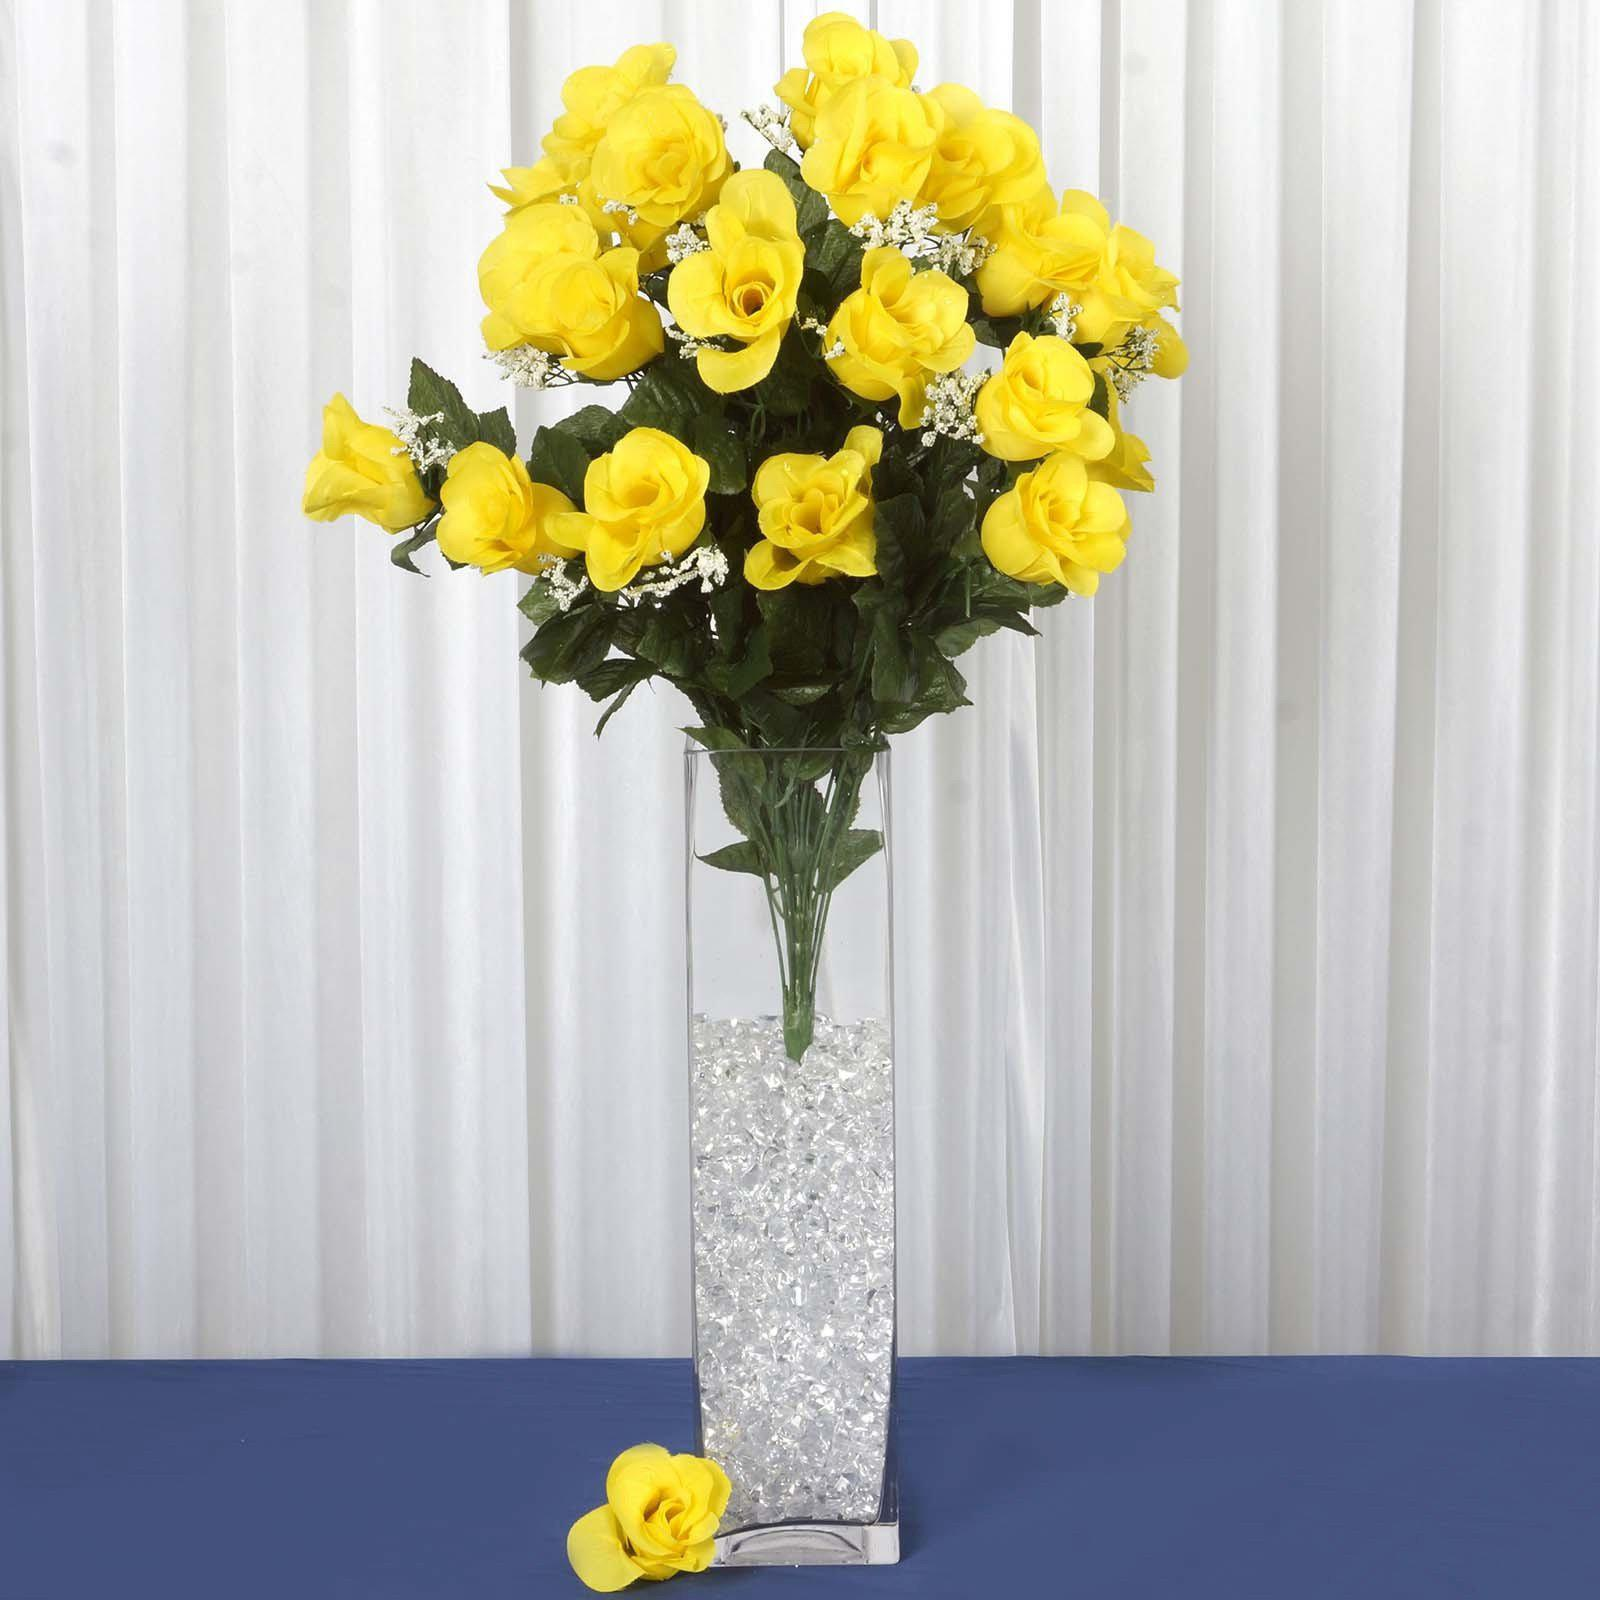 4 Bush 96 pcs Yellow Artificial Large Rose Bud Flower Bridal Bouquet ...